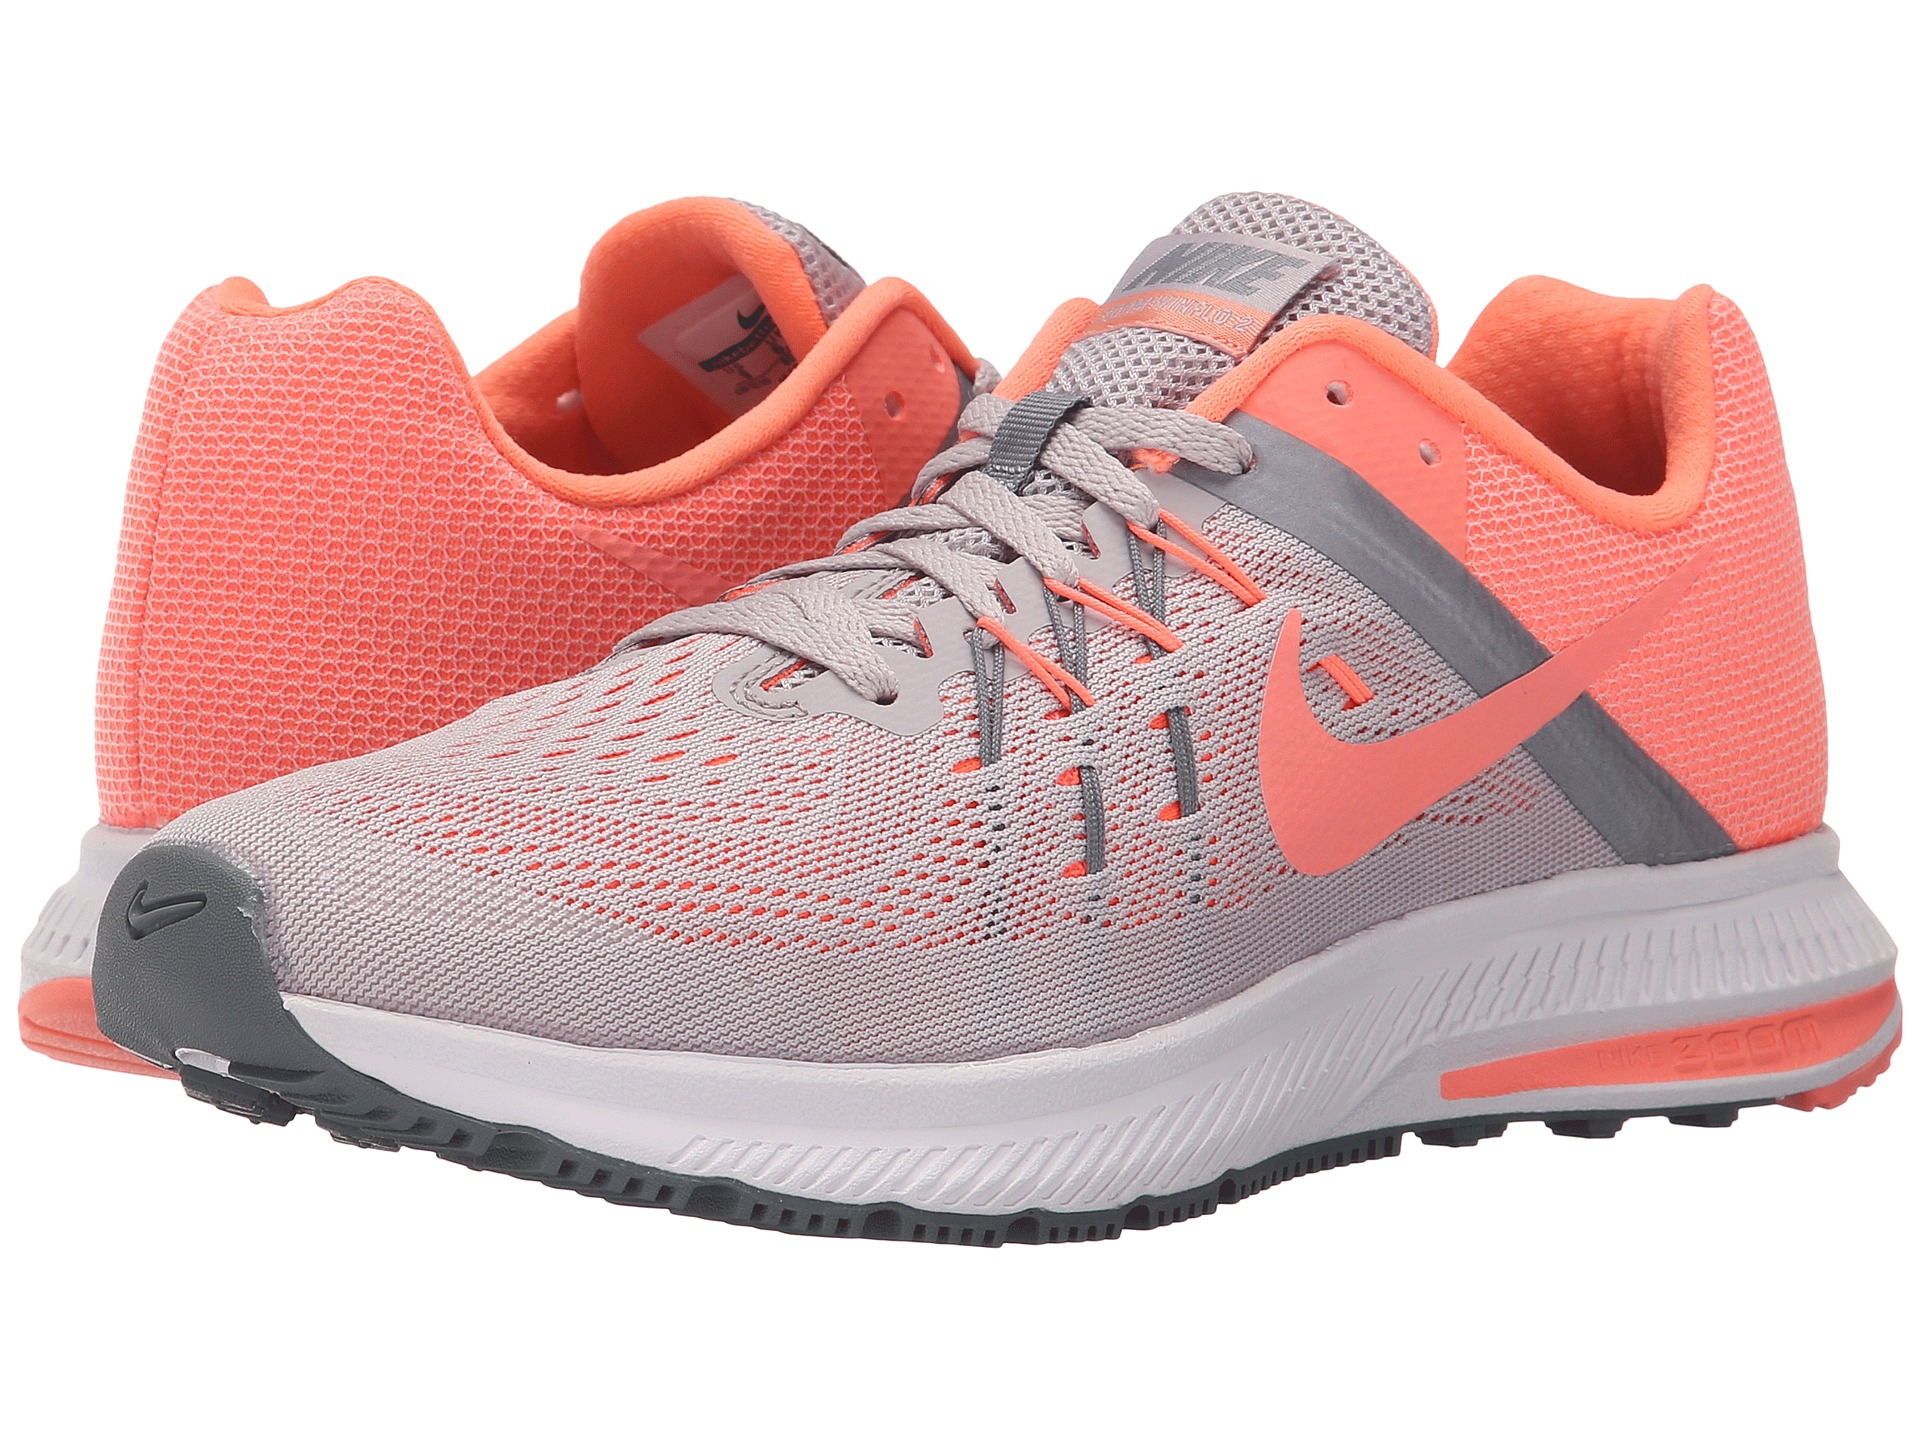 077c72a8f12 ... running shoe for men d2427 e99ce  germany lyst nike zoom winflo 2 in  pink 04bdc 272f0